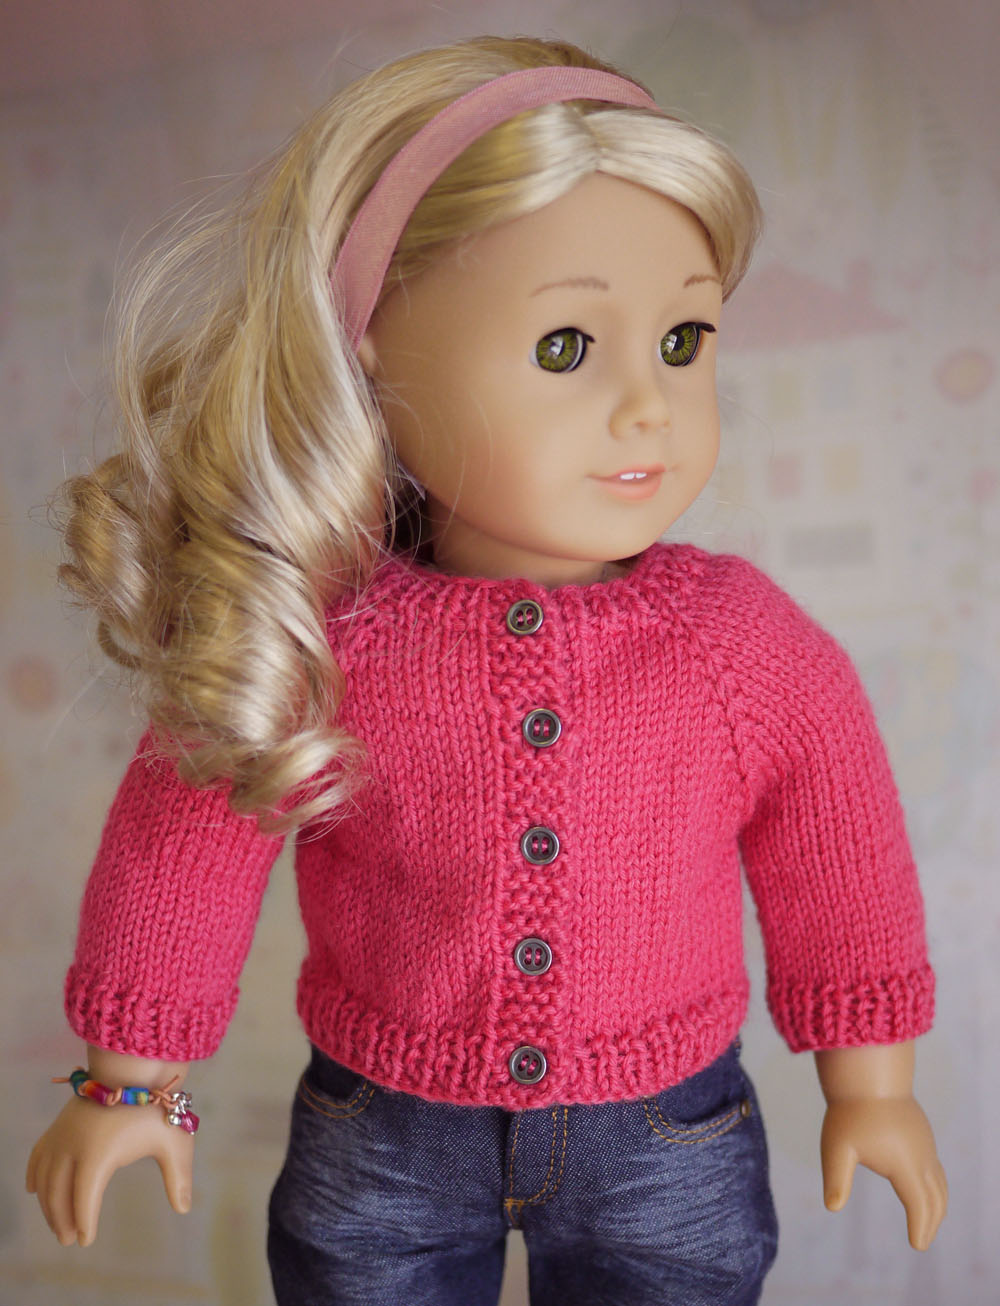 Free Knitting Pattern Dolls Jumper : American Girl Doll Cardigan Sweater Knitting Pattern ...